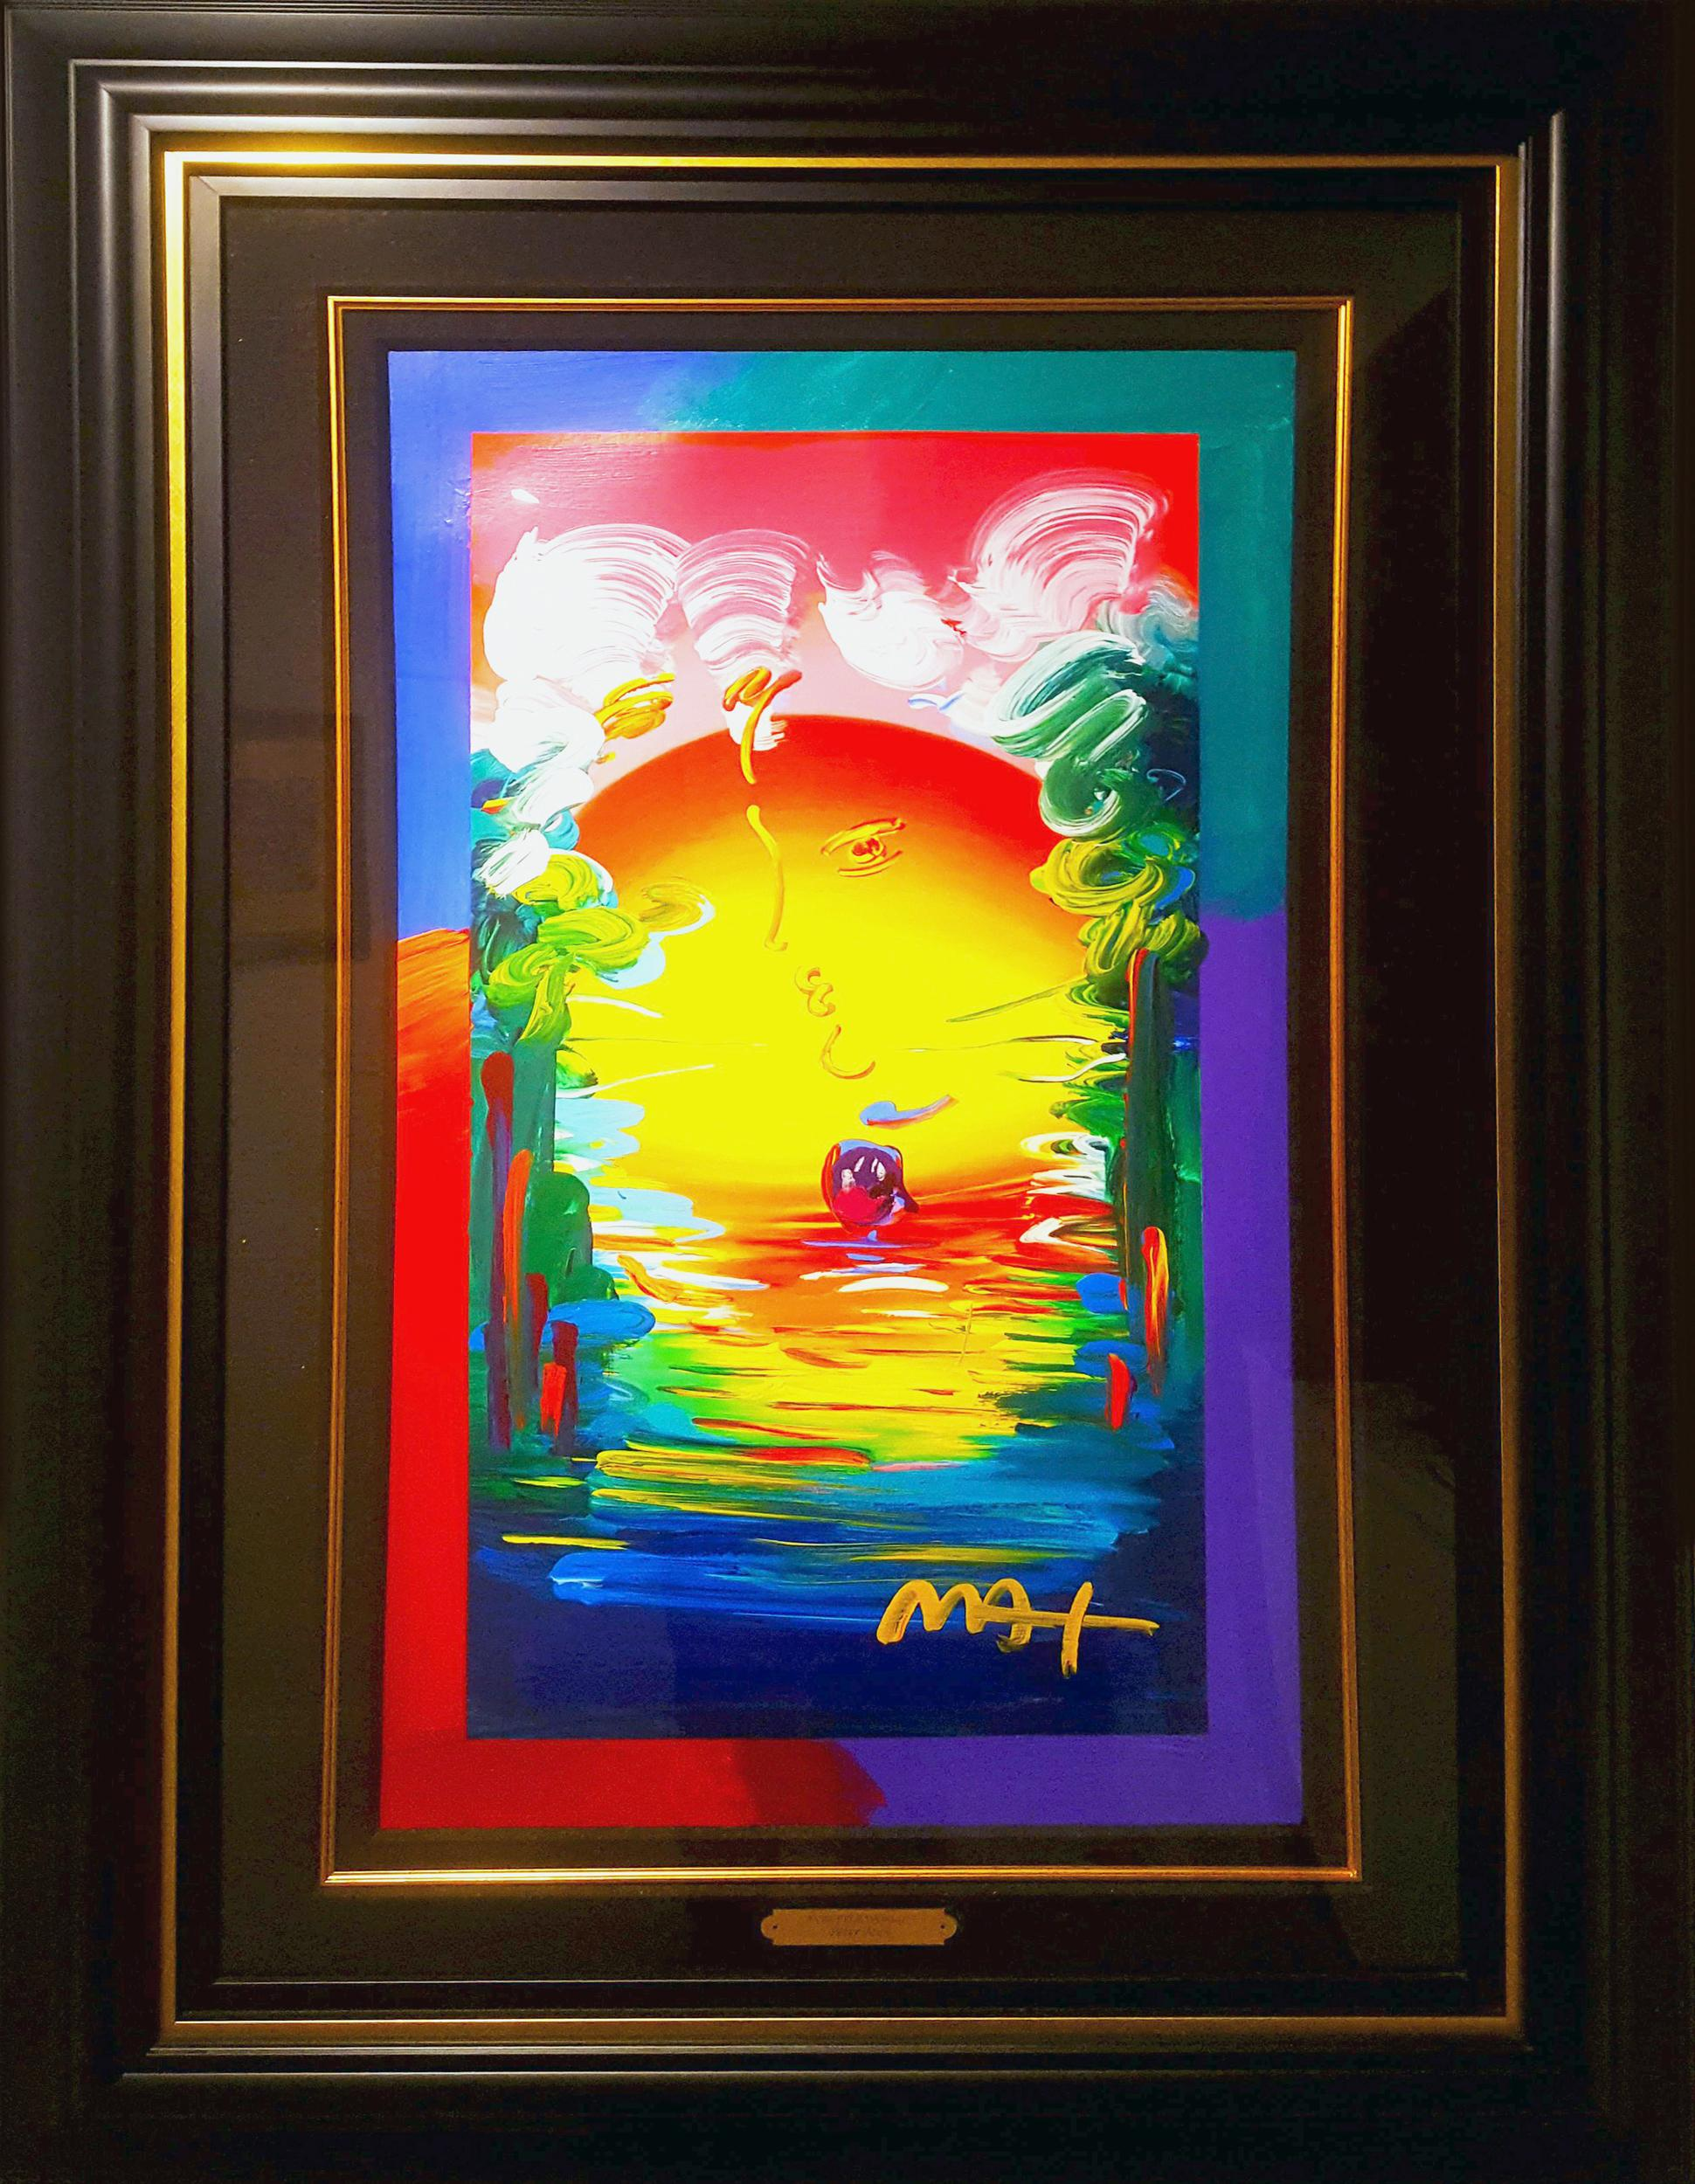 Peter Max, Better World, Mixed Media with Acrylic on Serigraph